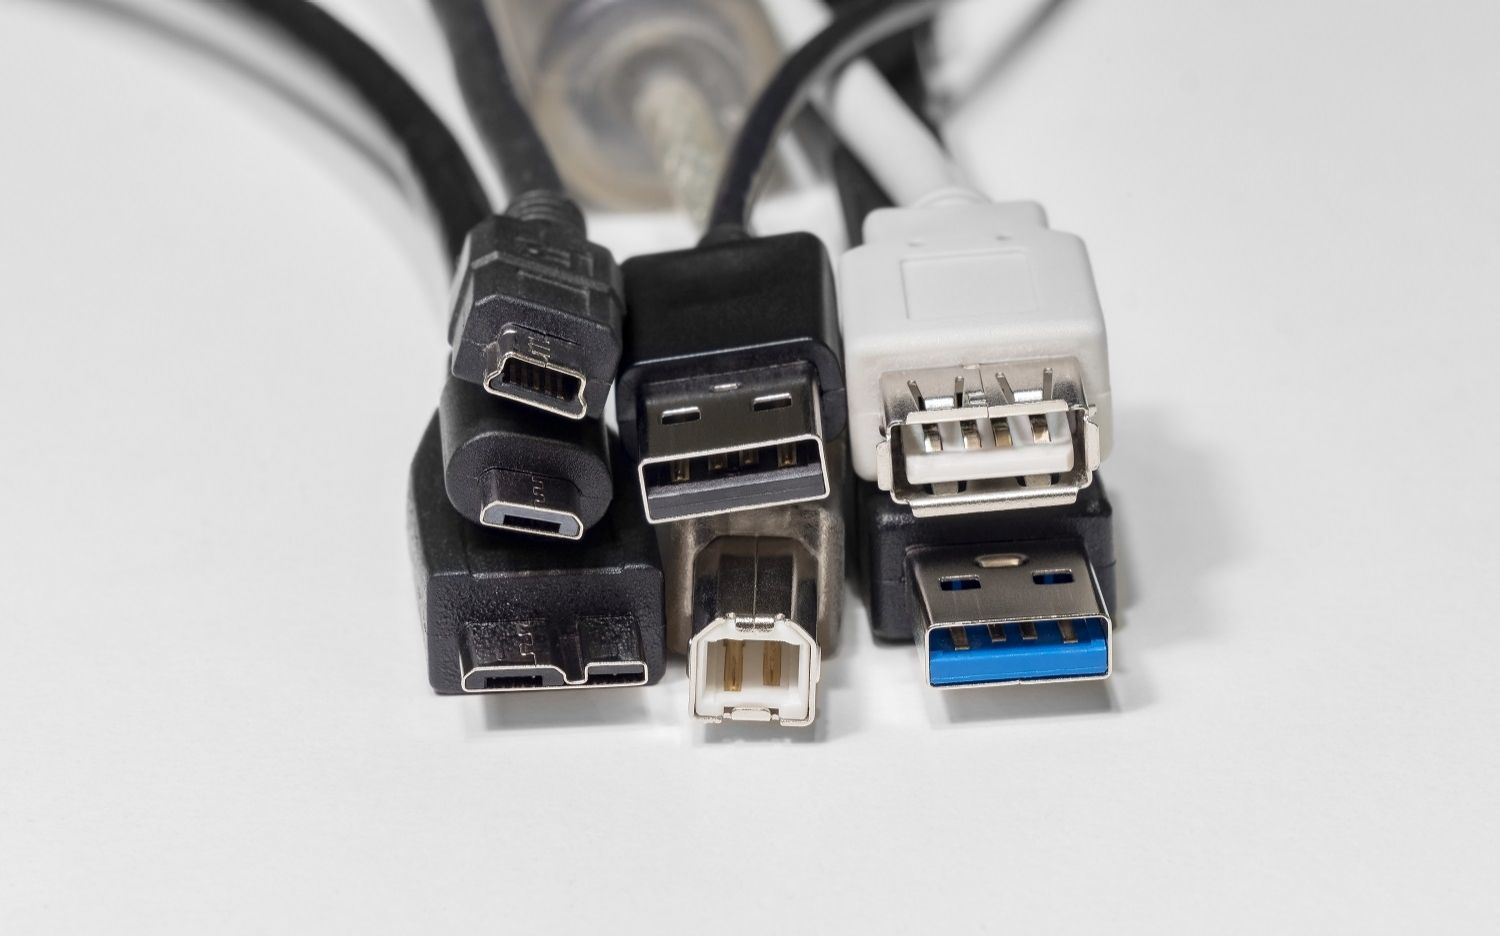 A variety of cable connectors with different form factors